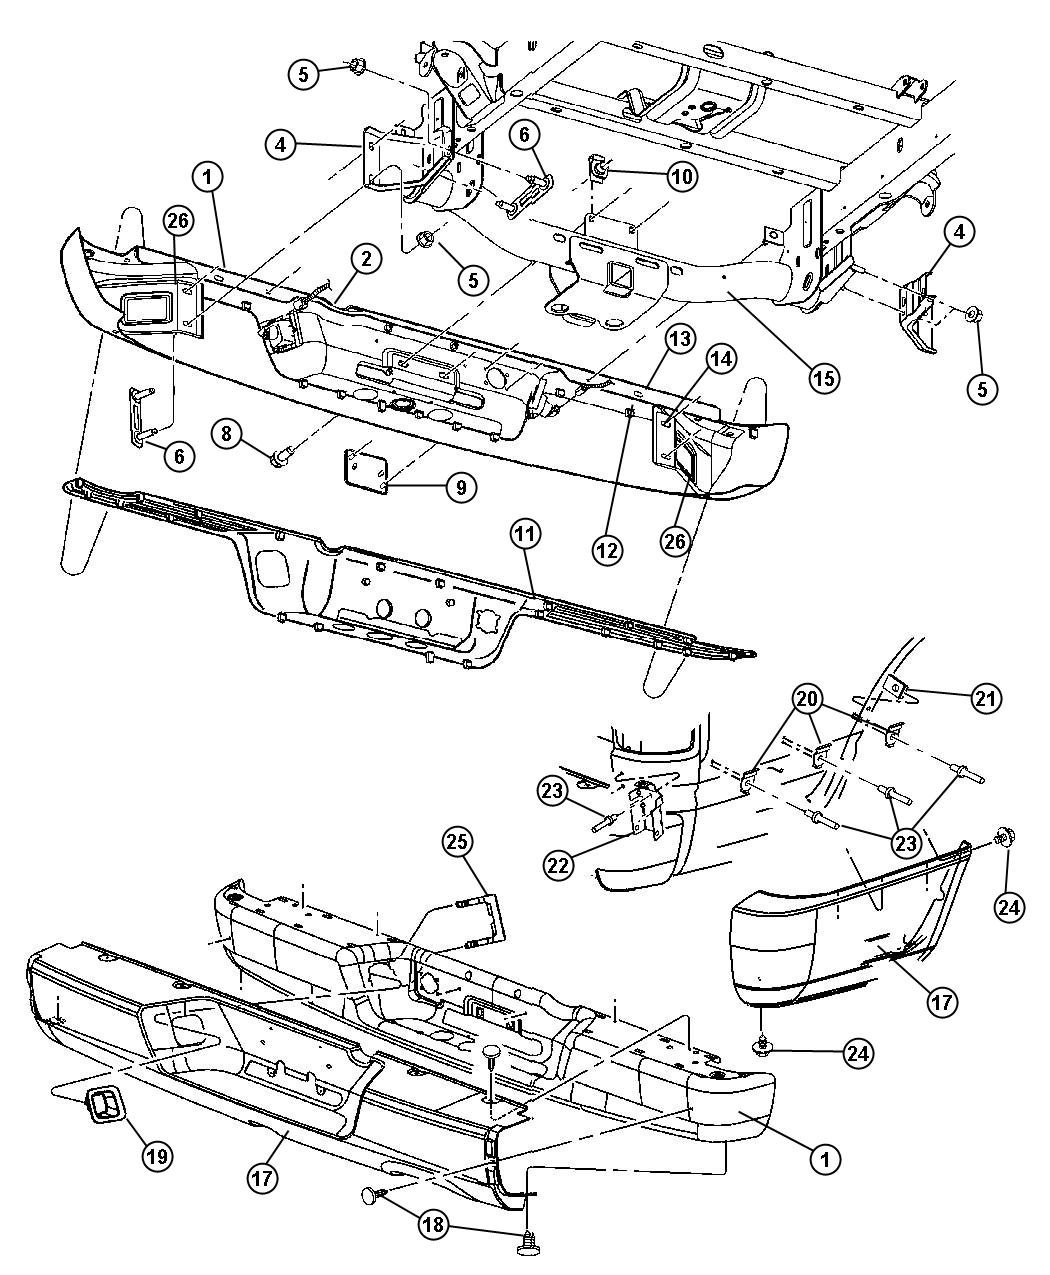 Dodge ram bumper diagram